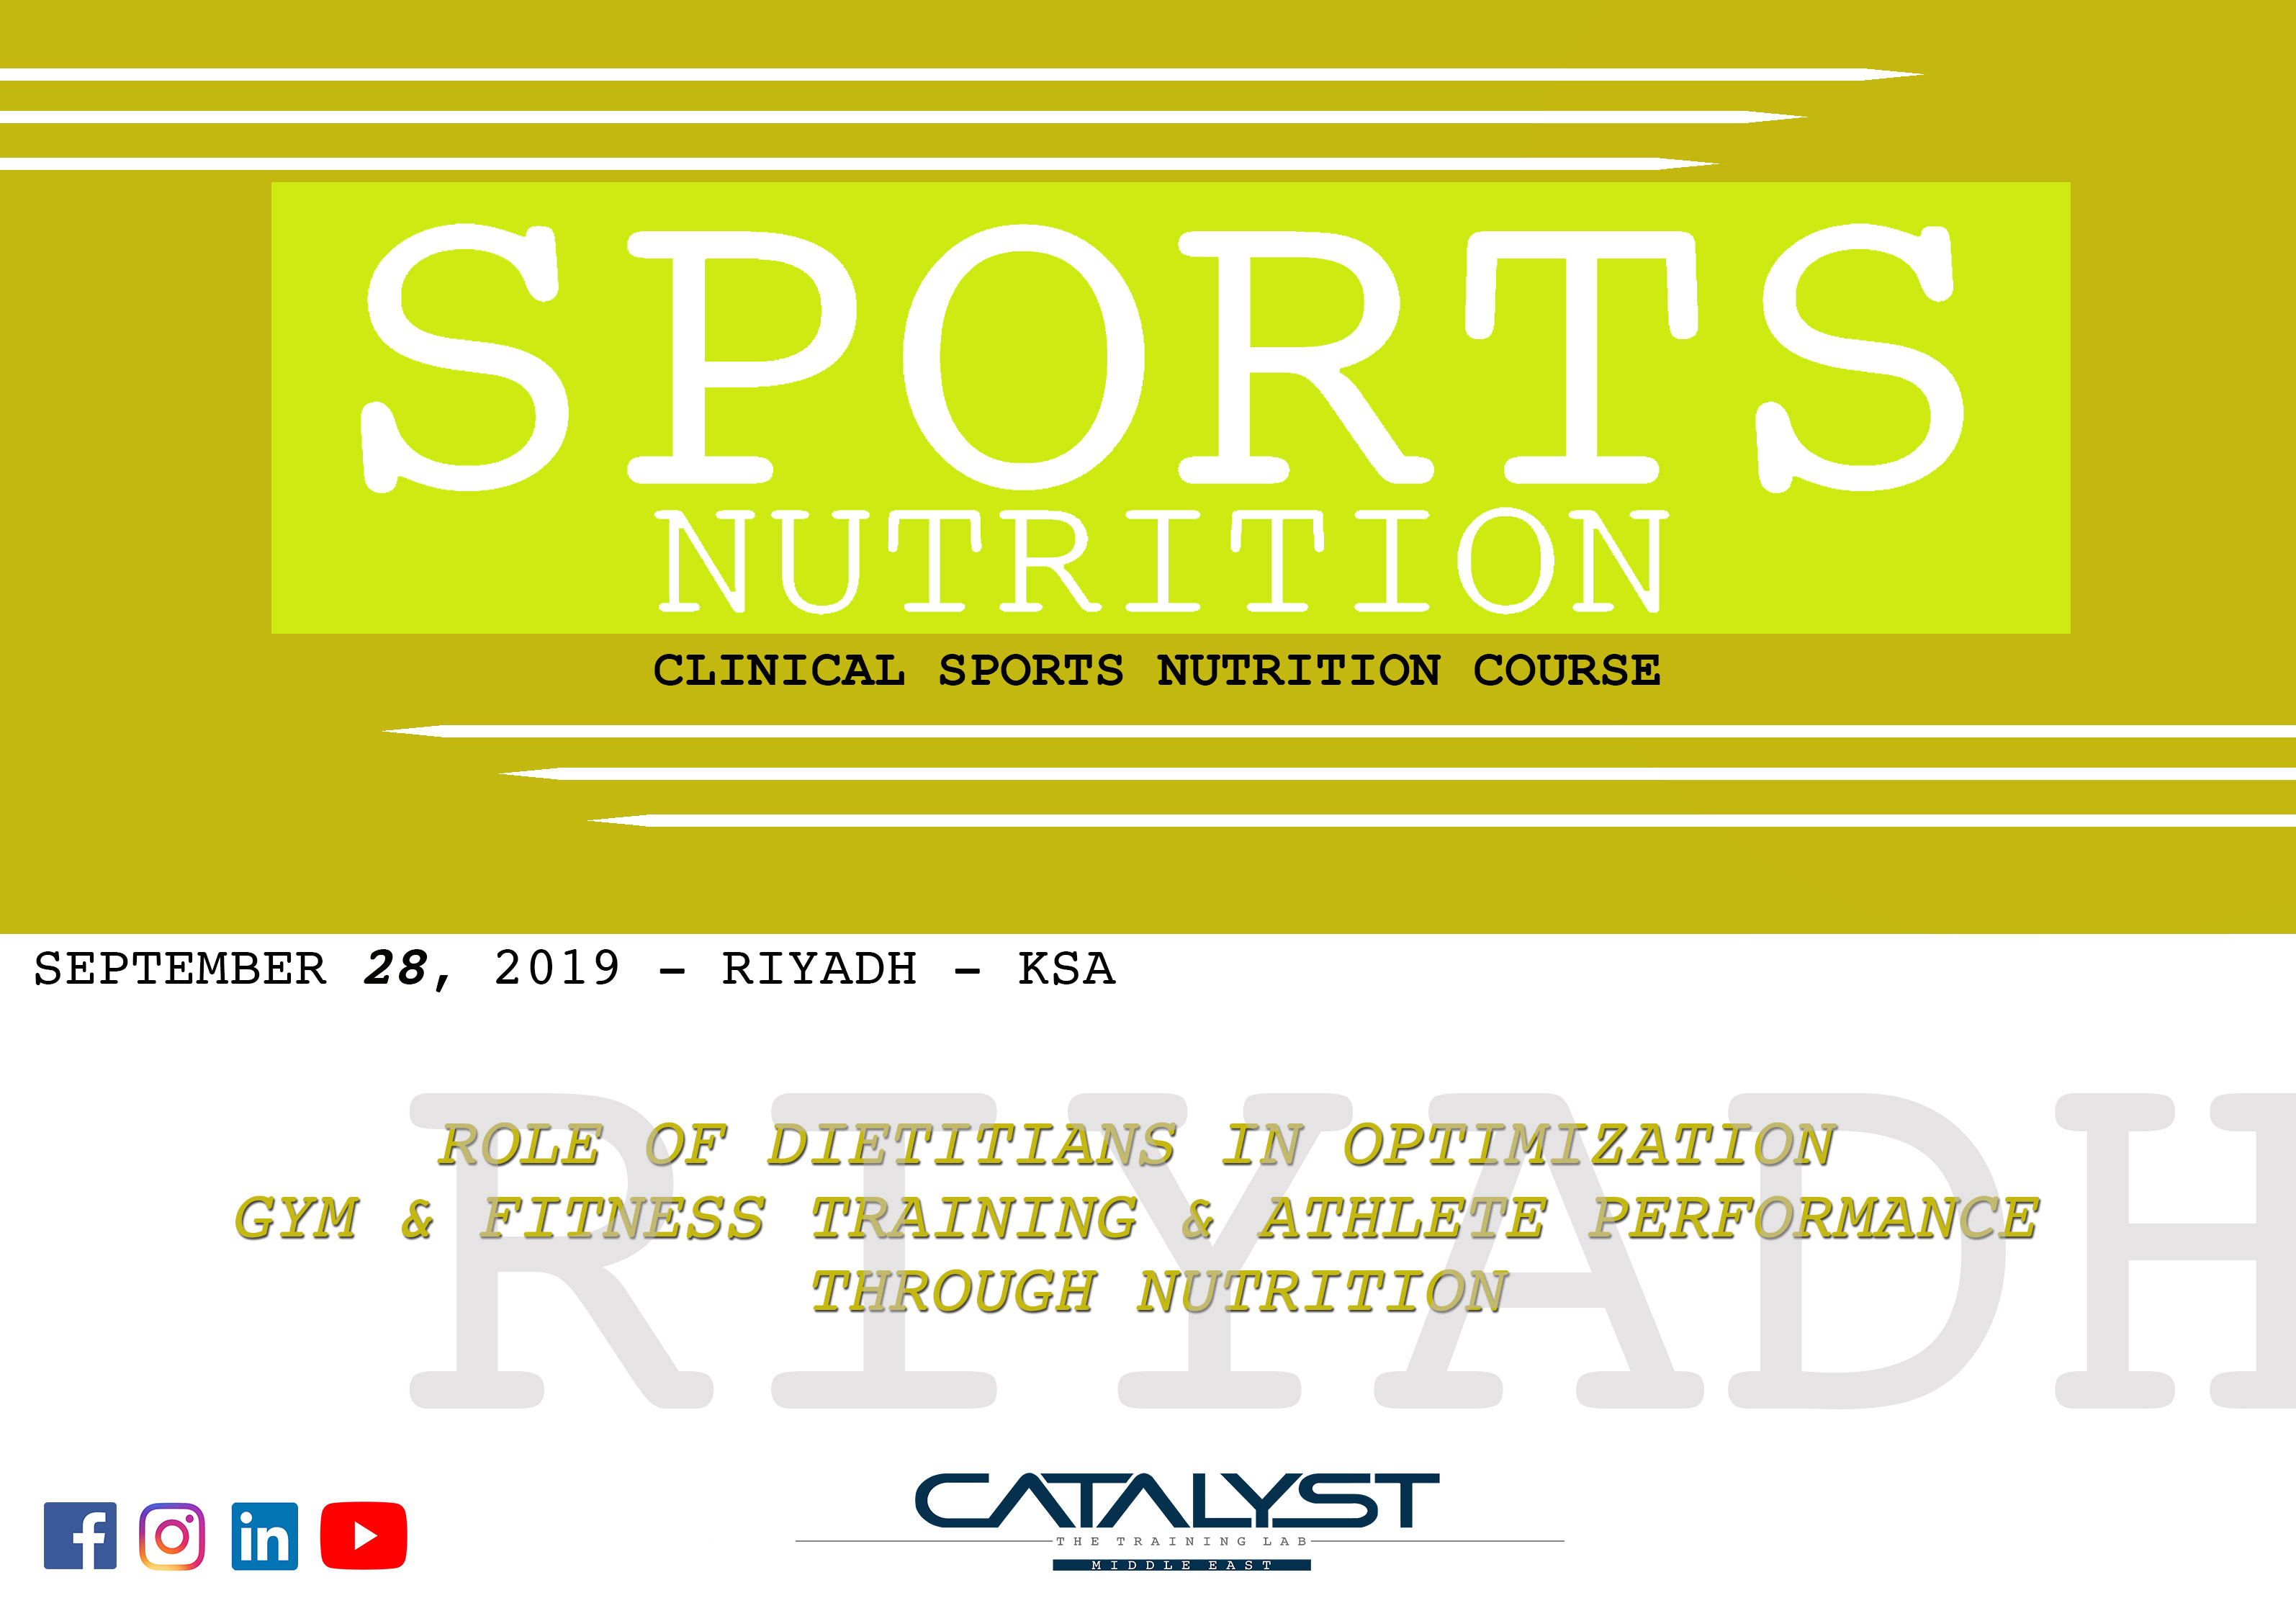 Catalyst - The Training Lab - Middle East